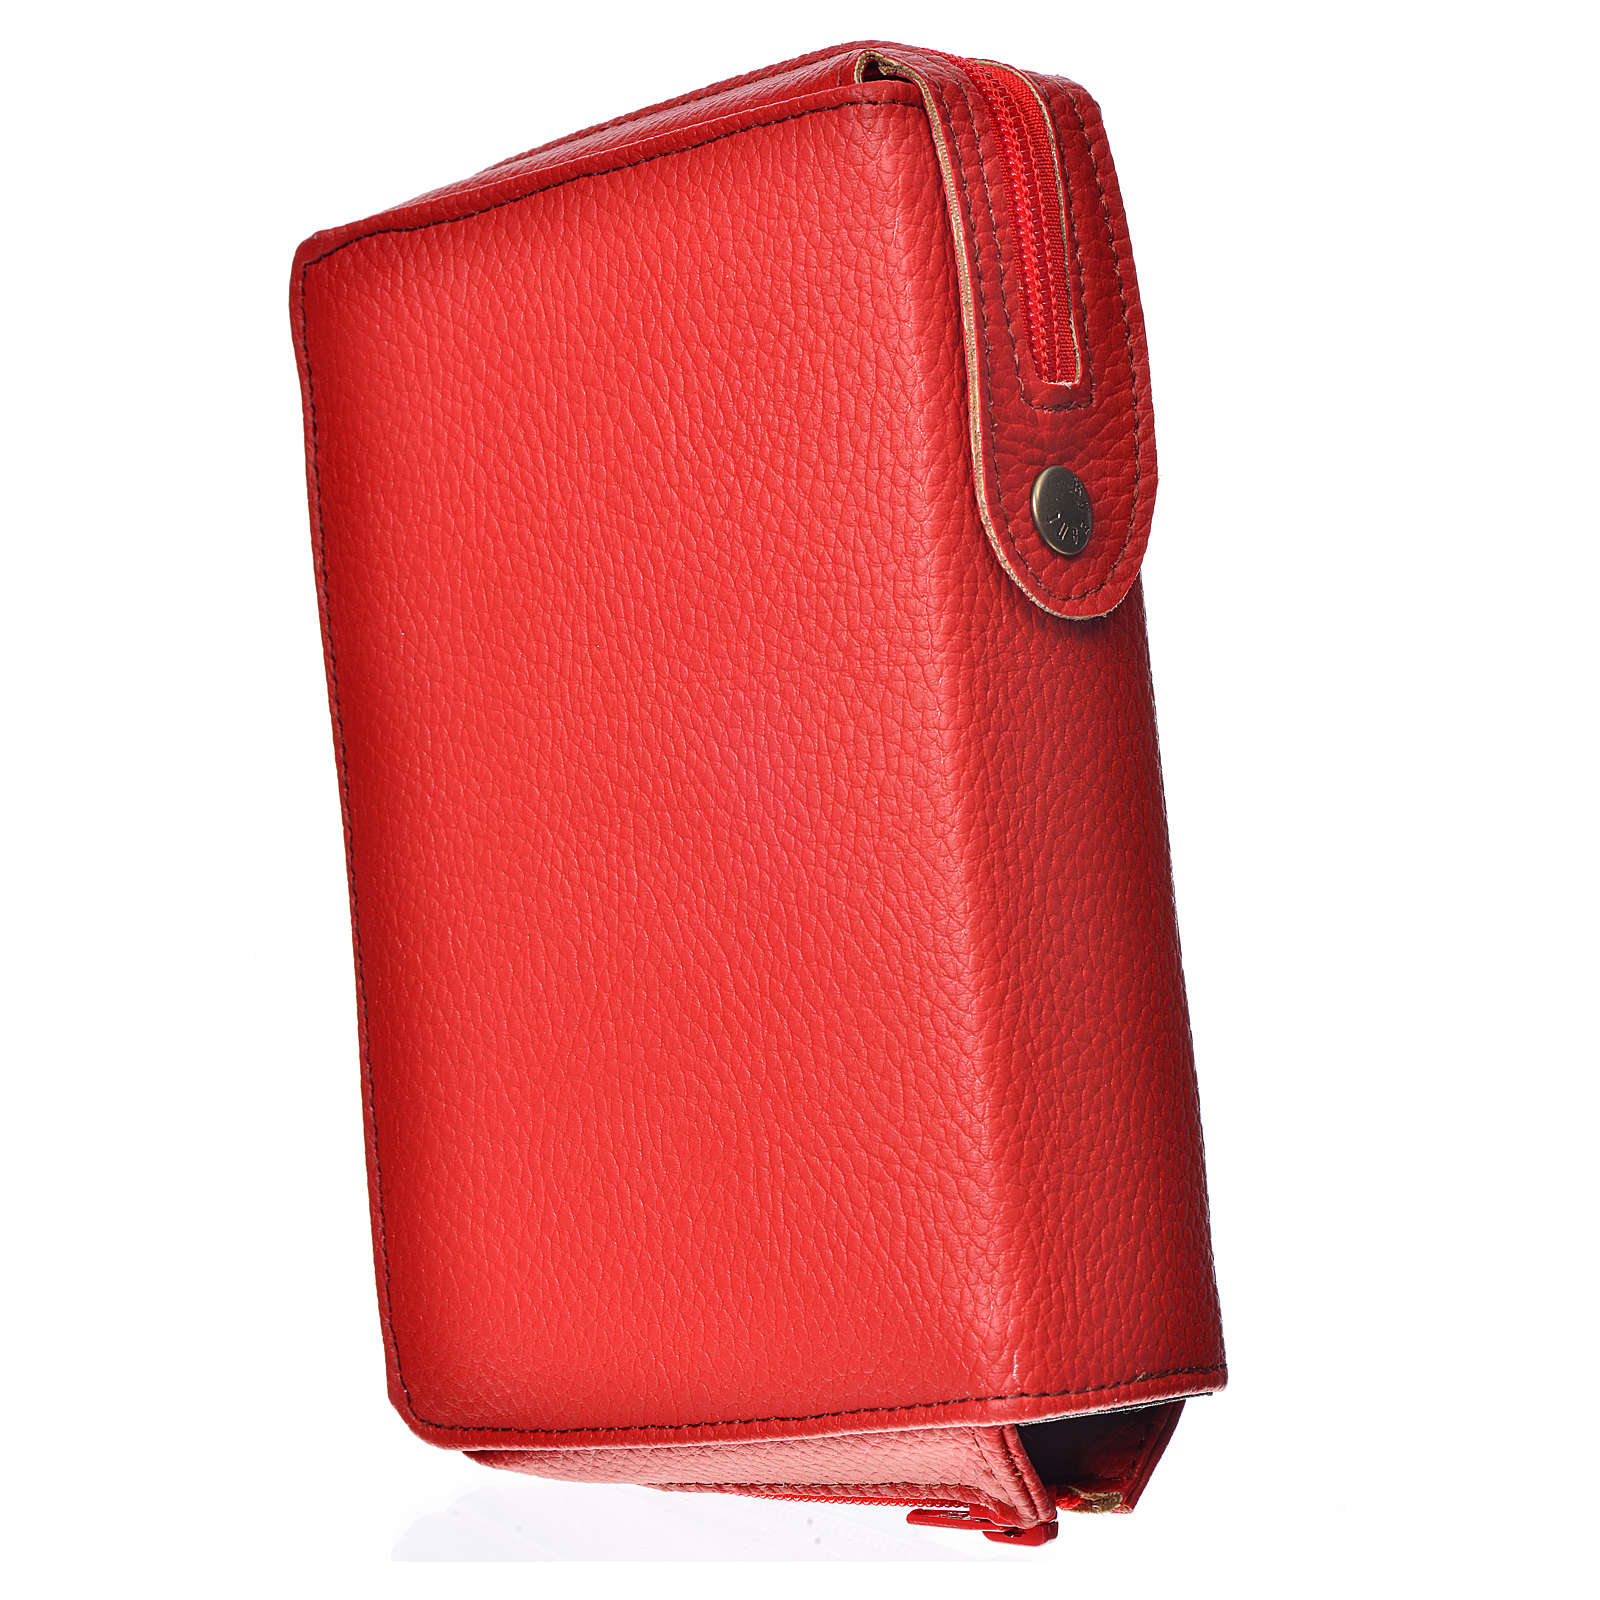 Morning & Evening prayer cover red bonded leather, Holy Family of Kiko 4